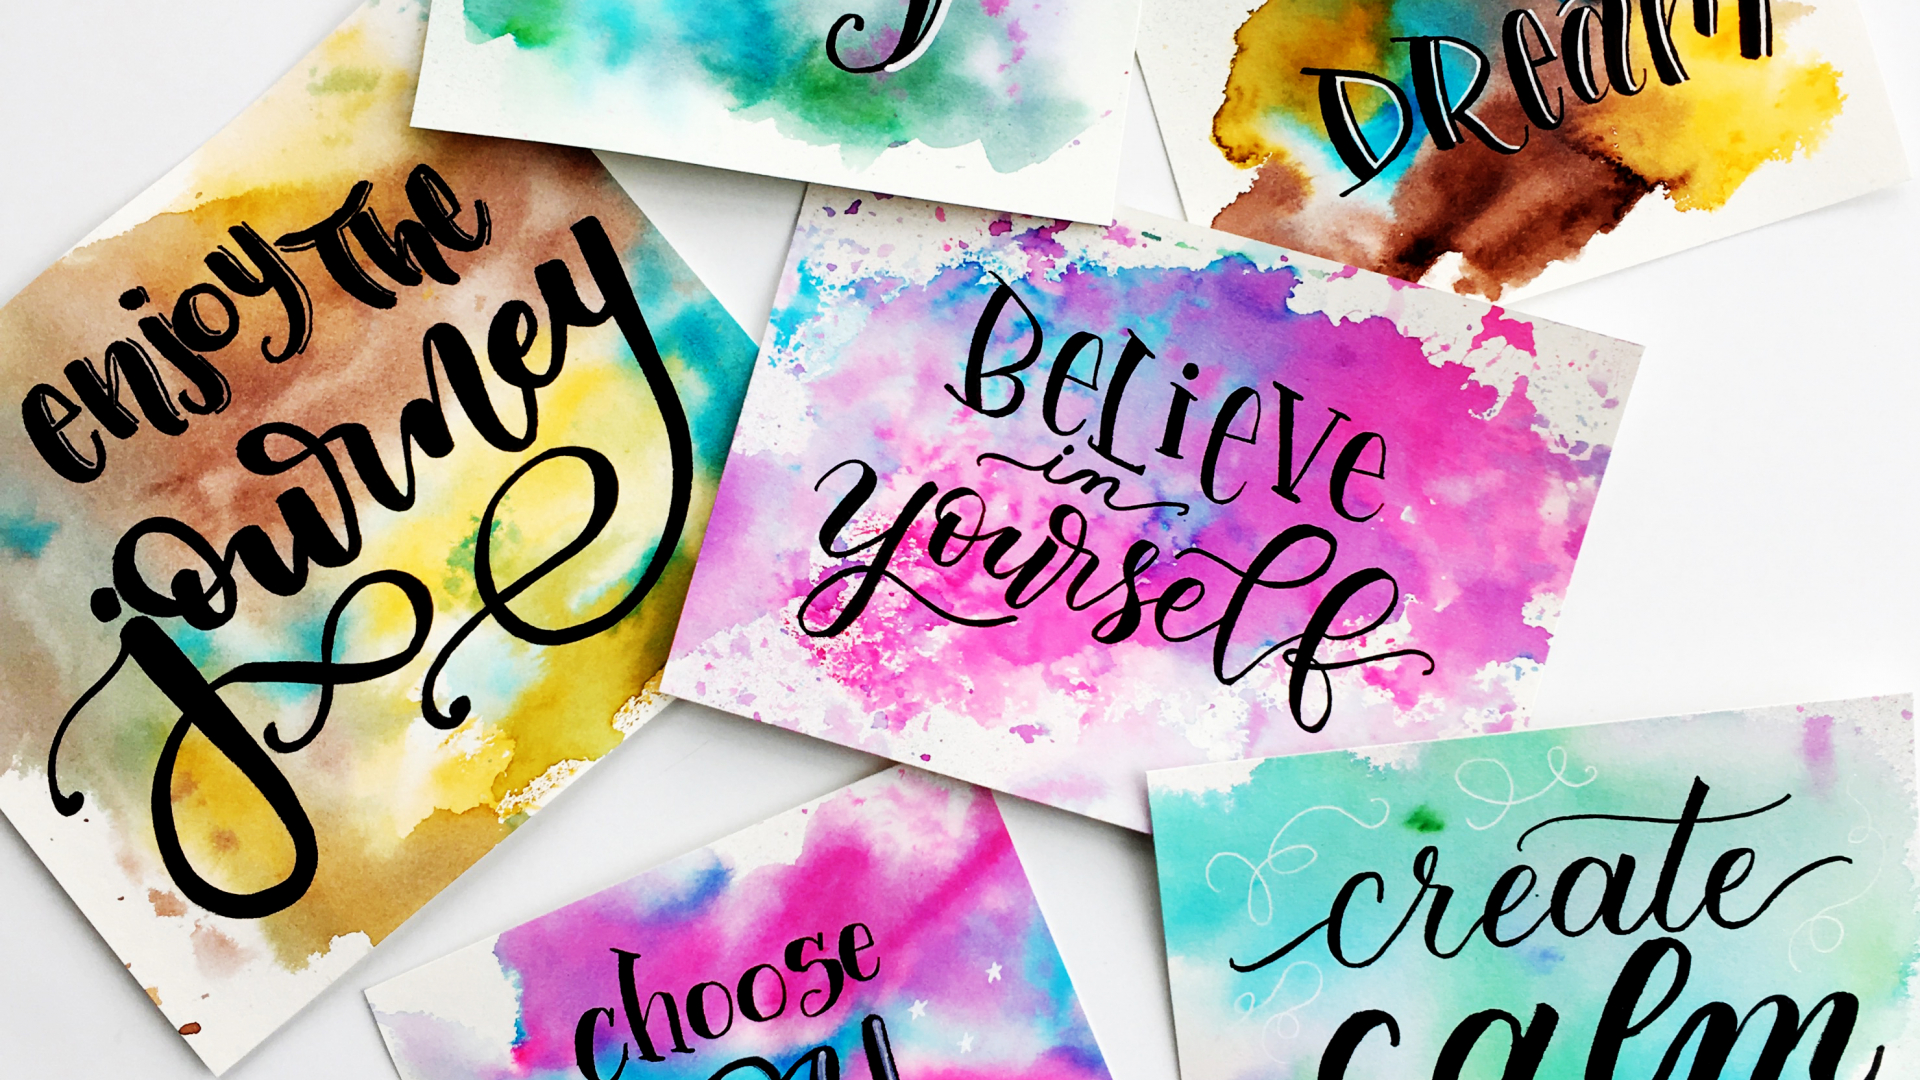 Free Download Easy Watercolour Background Techniques For Hand Lettering Quotes 2959x2959 For Your Desktop Mobile Tablet Explore 24 Background Techniques Wallpaper Techniques Background Techniques Wallpaper Removal Techniques